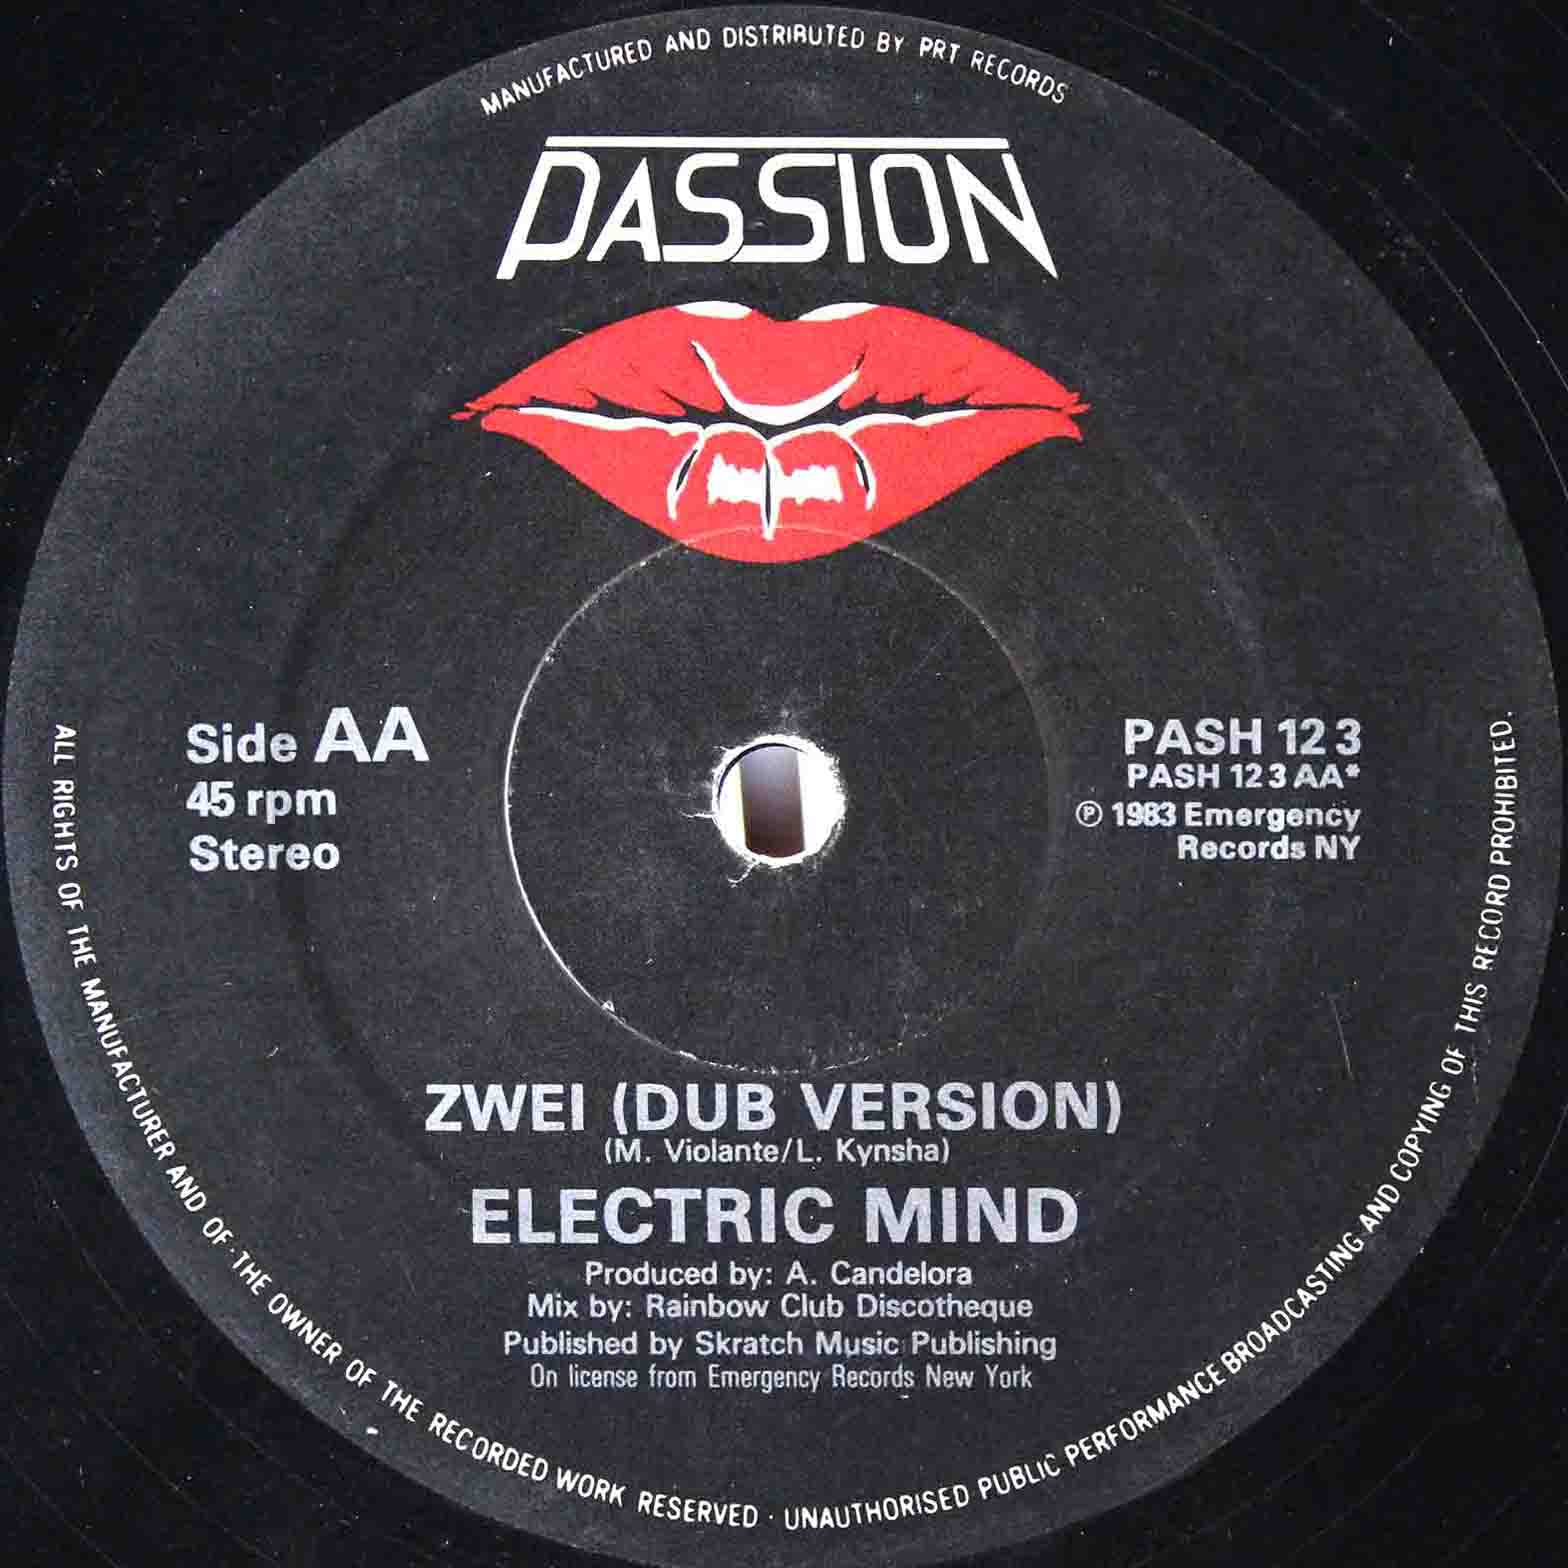 Electric Mind (1983) - Pick Me Up 09